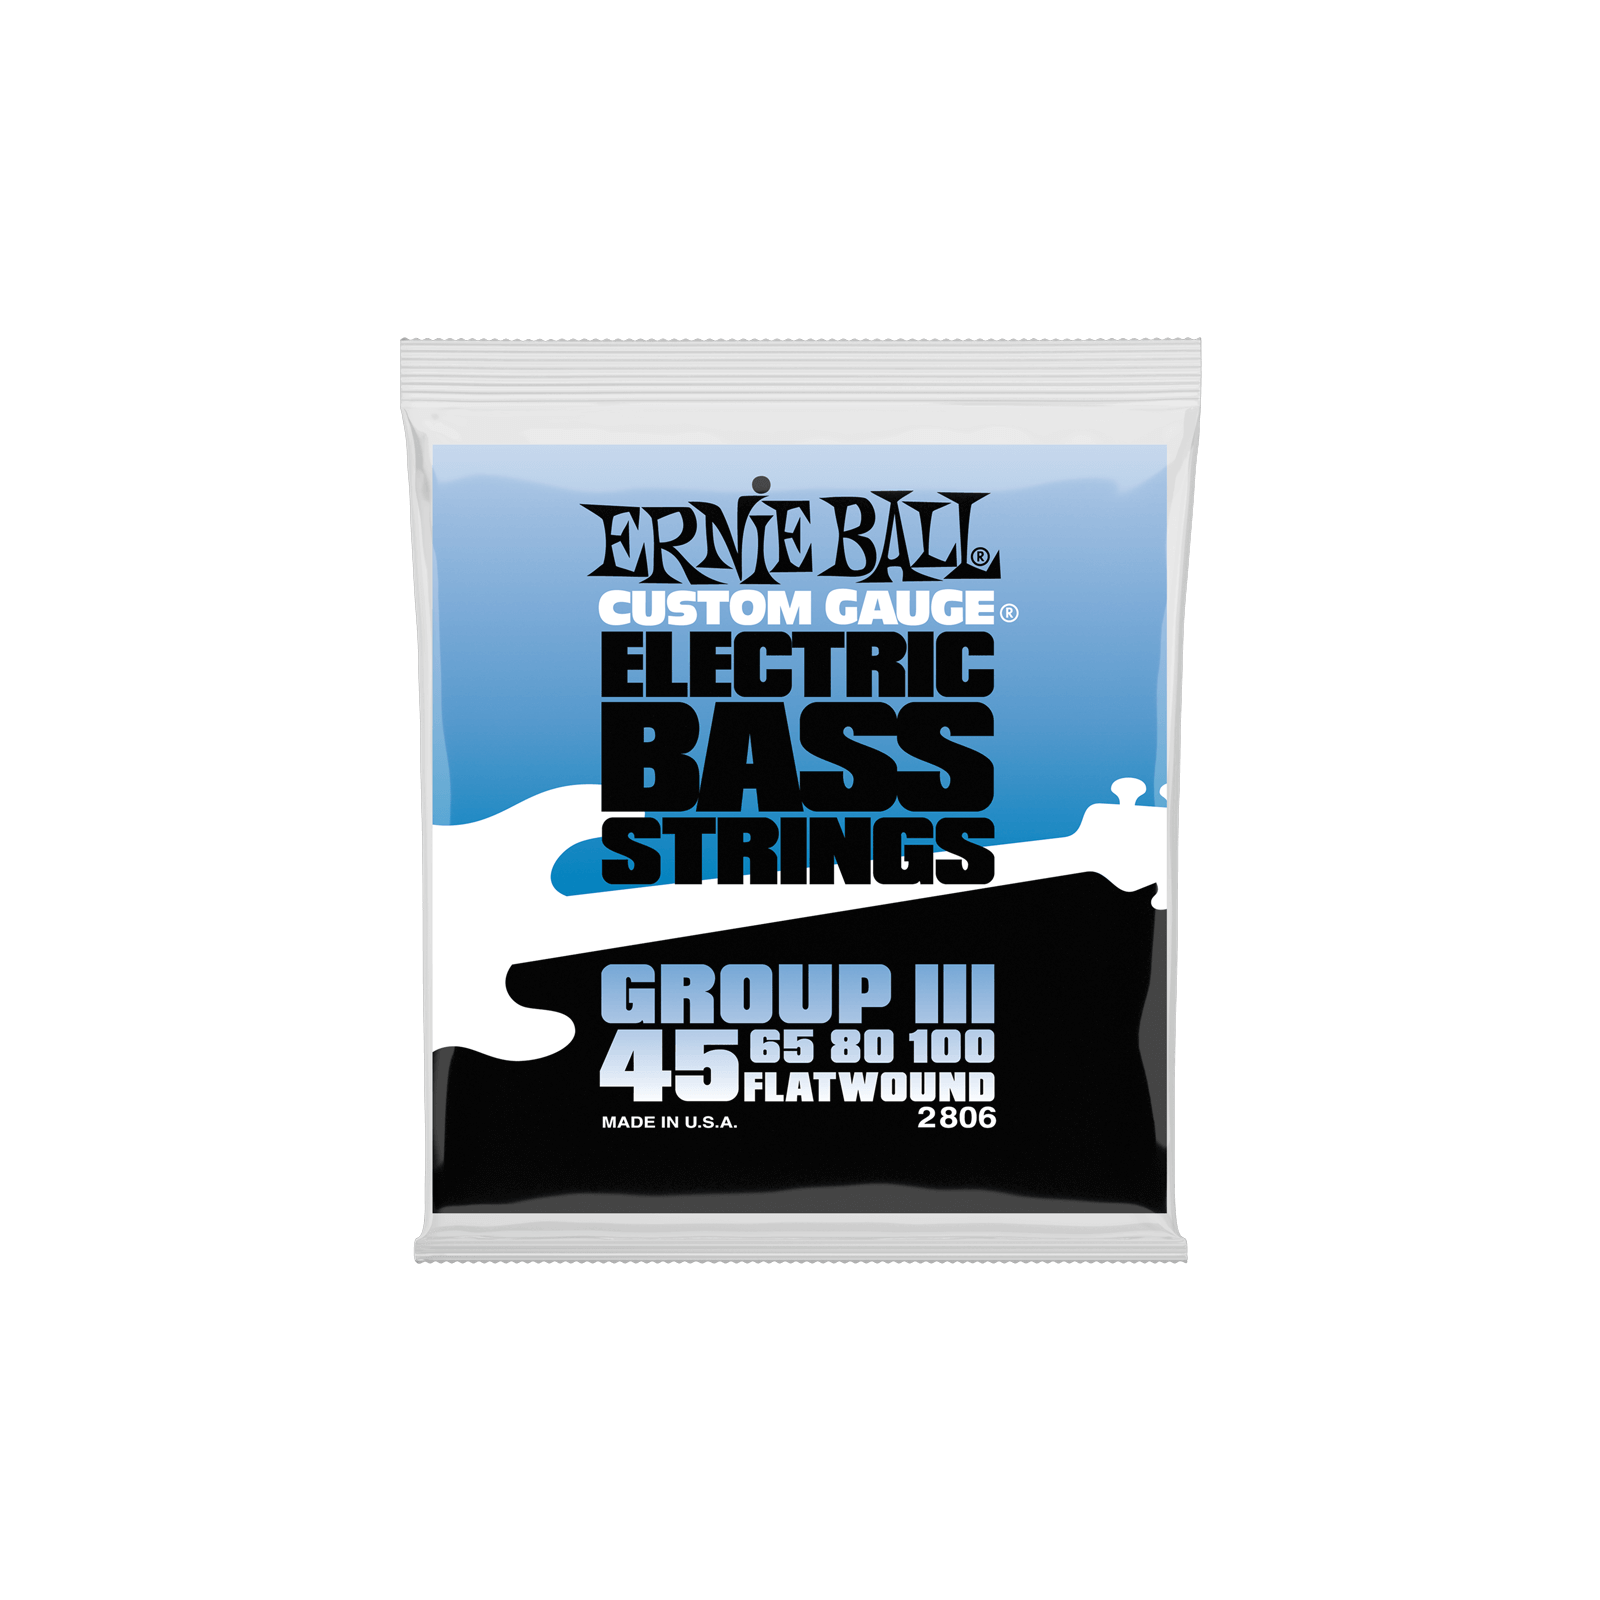 ERNIE BALL FLATWOUND GROUP III BASS STRINGS 45-100 E2806